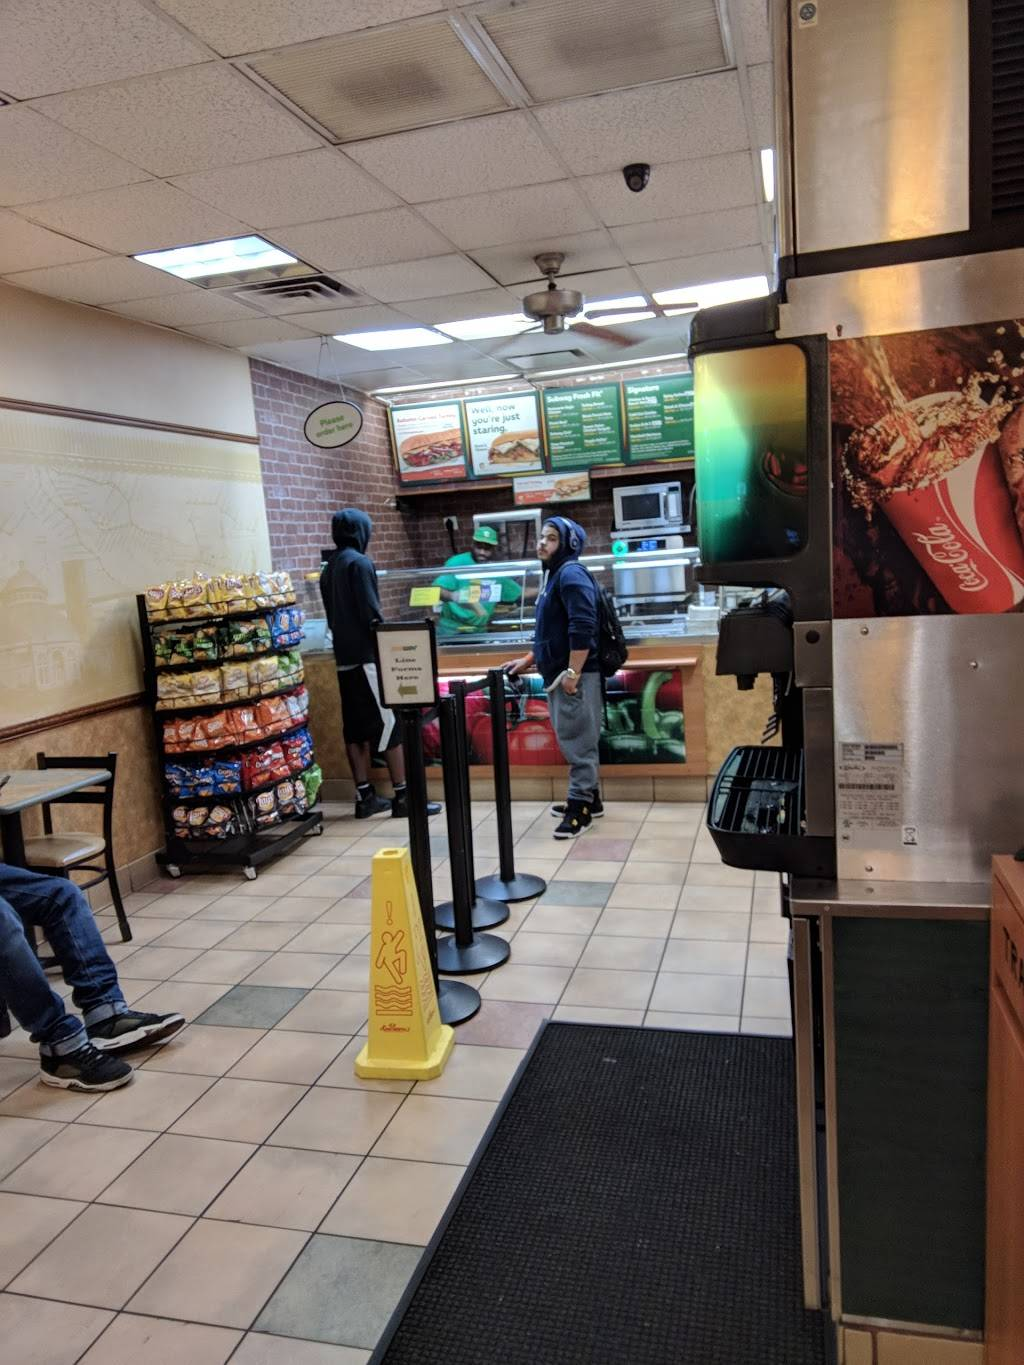 Subway | restaurant | 578 W 125th St, New York, NY 10027, USA | 6466783504 OR +1 646-678-3504